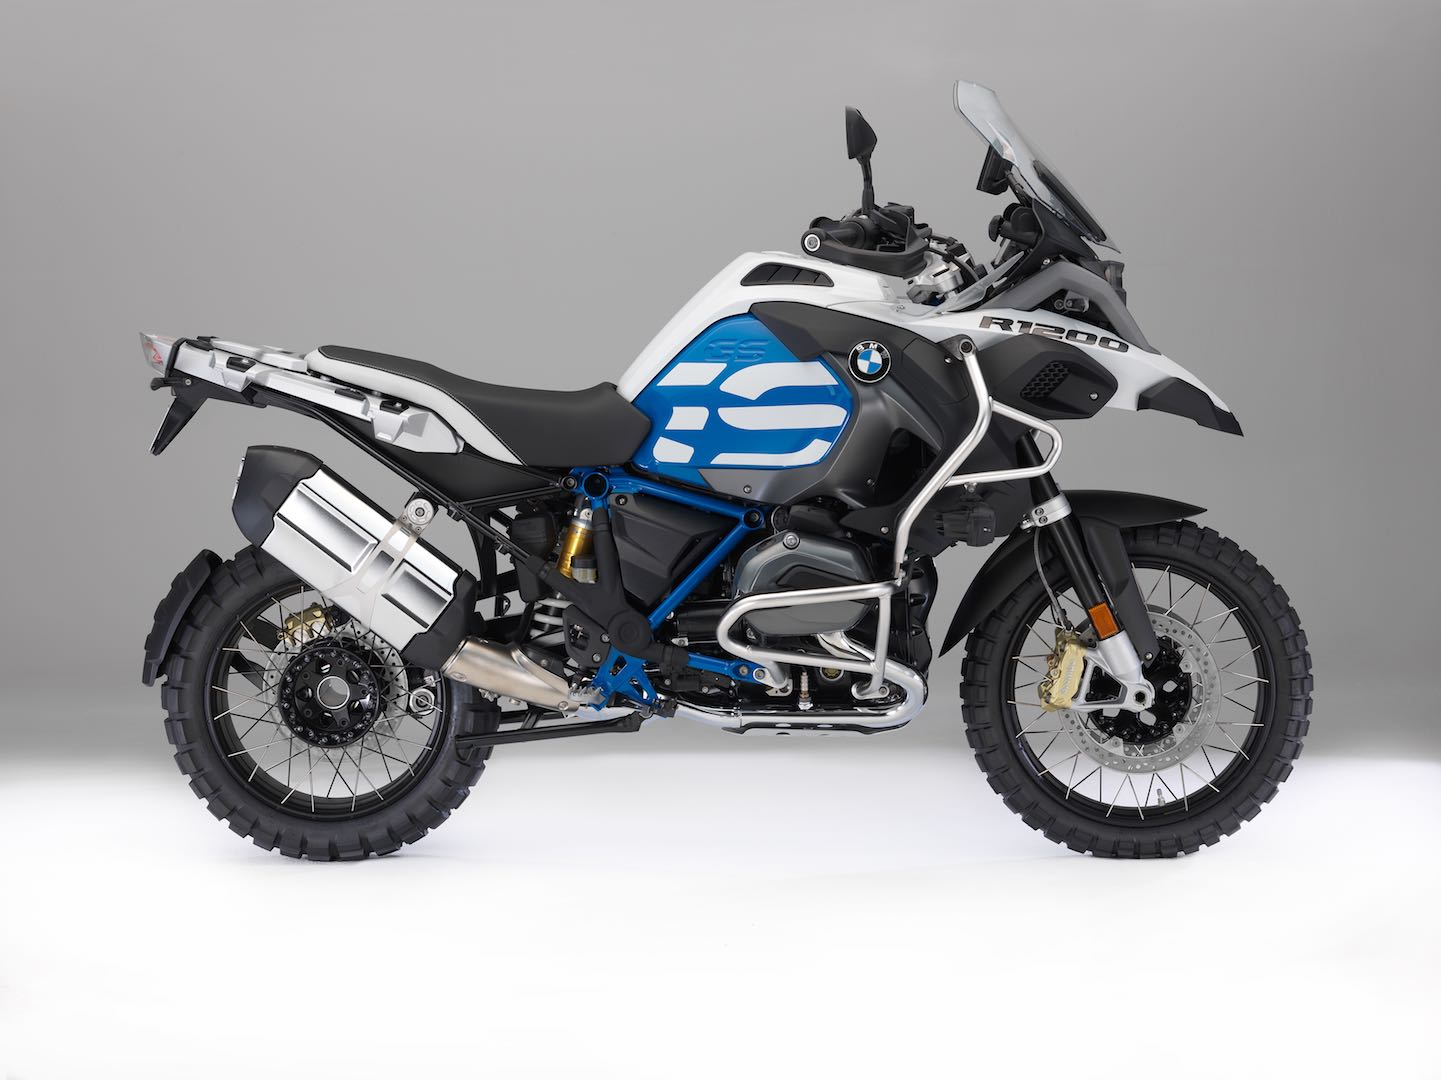 2018 bmw r 1200 gs adventure buyer 39 s guide specs price. Black Bedroom Furniture Sets. Home Design Ideas